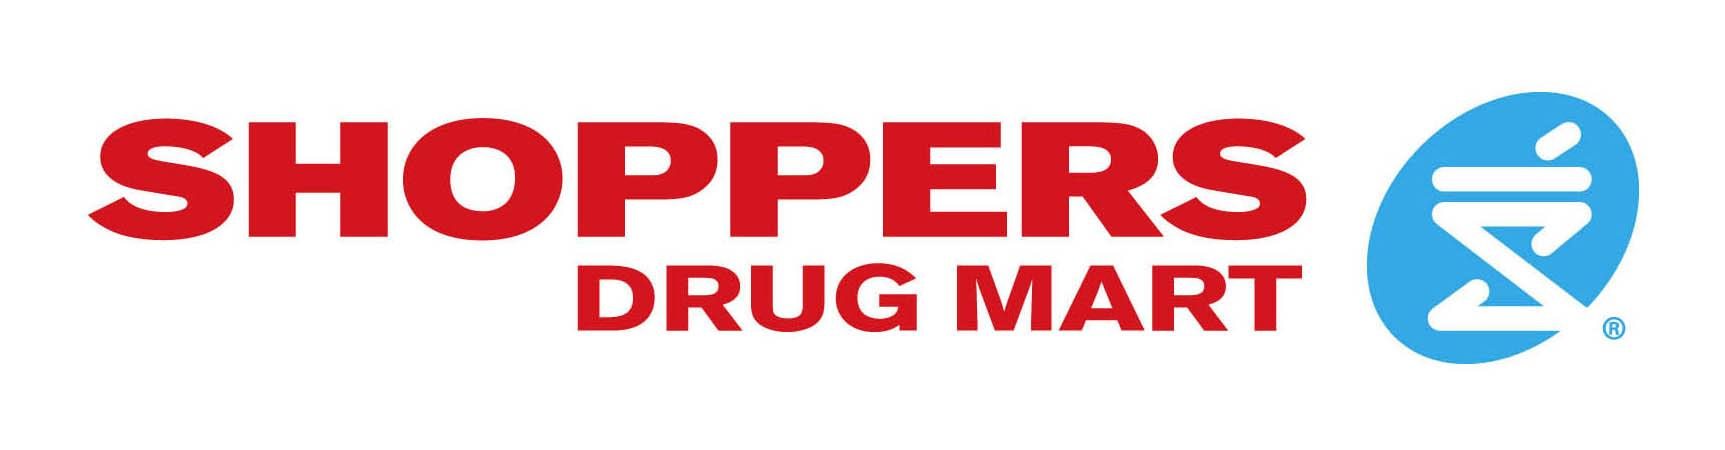 Image result for shoppers drug mart logo